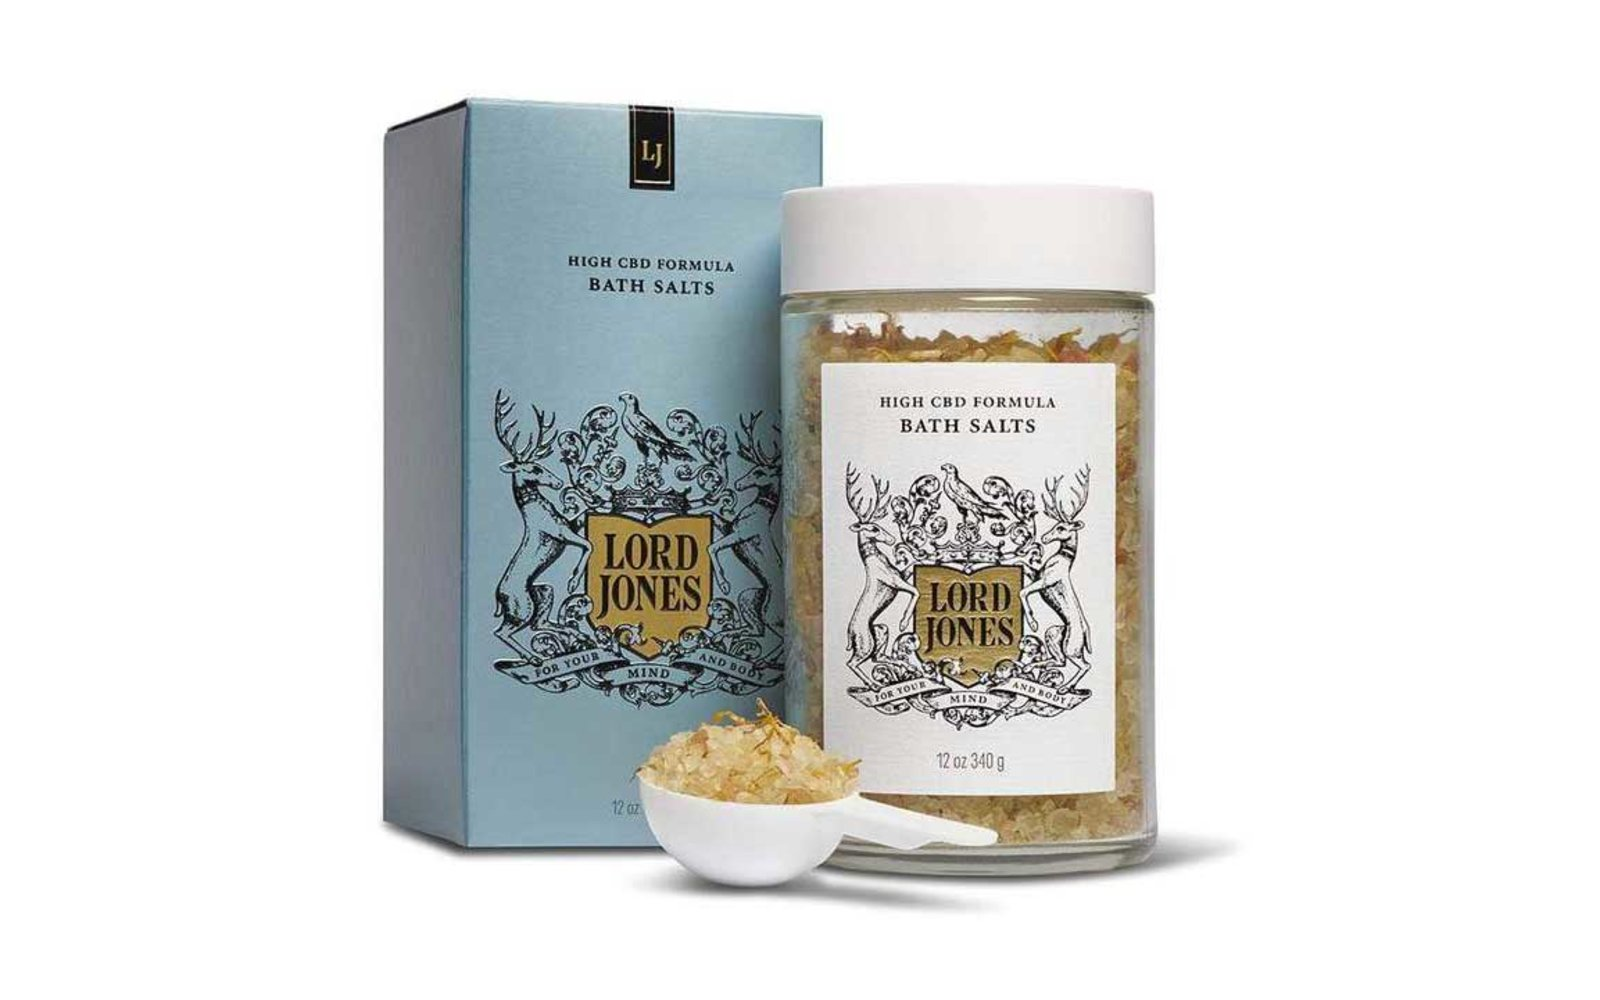 To Give: Lord Jones High CBD Formula Bath Salts